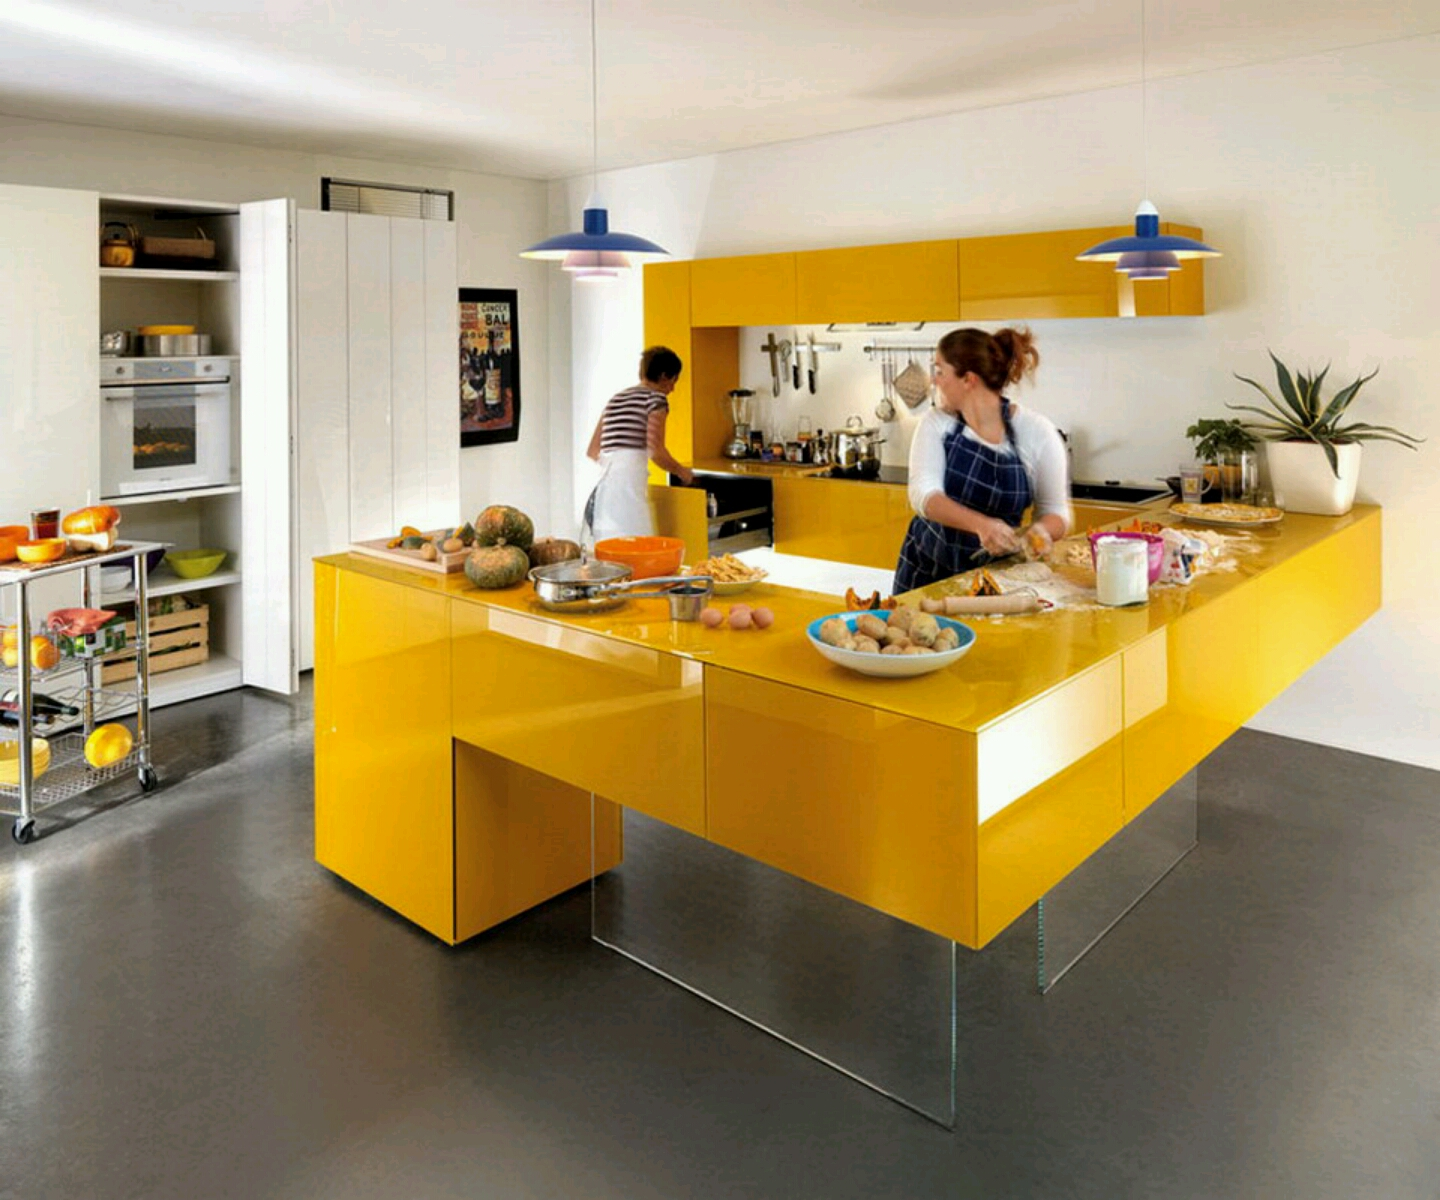 Kitchen Design Ideas 2012 ~ Modern kitchen cabinets designs ideas furniture gallery